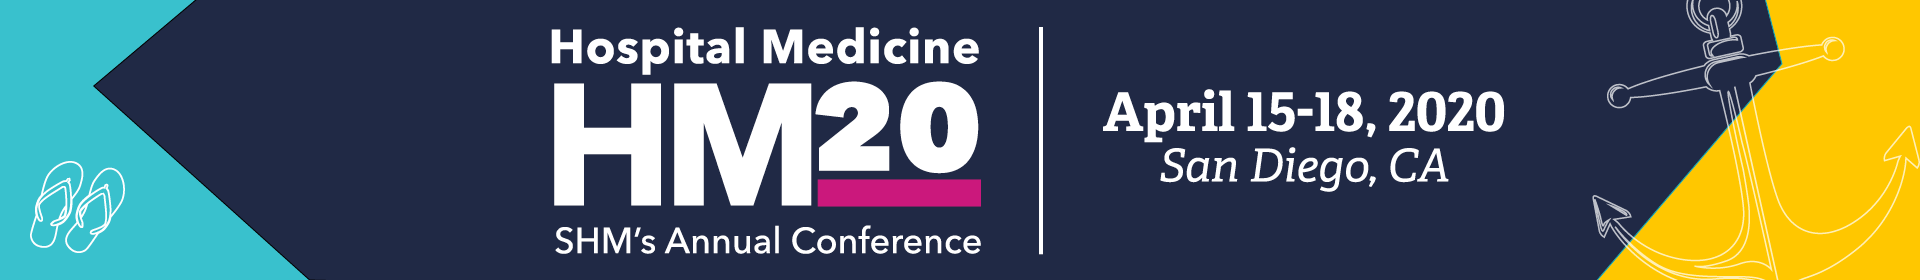 Hospital Medicine 2020 - Abstracts Event Banner